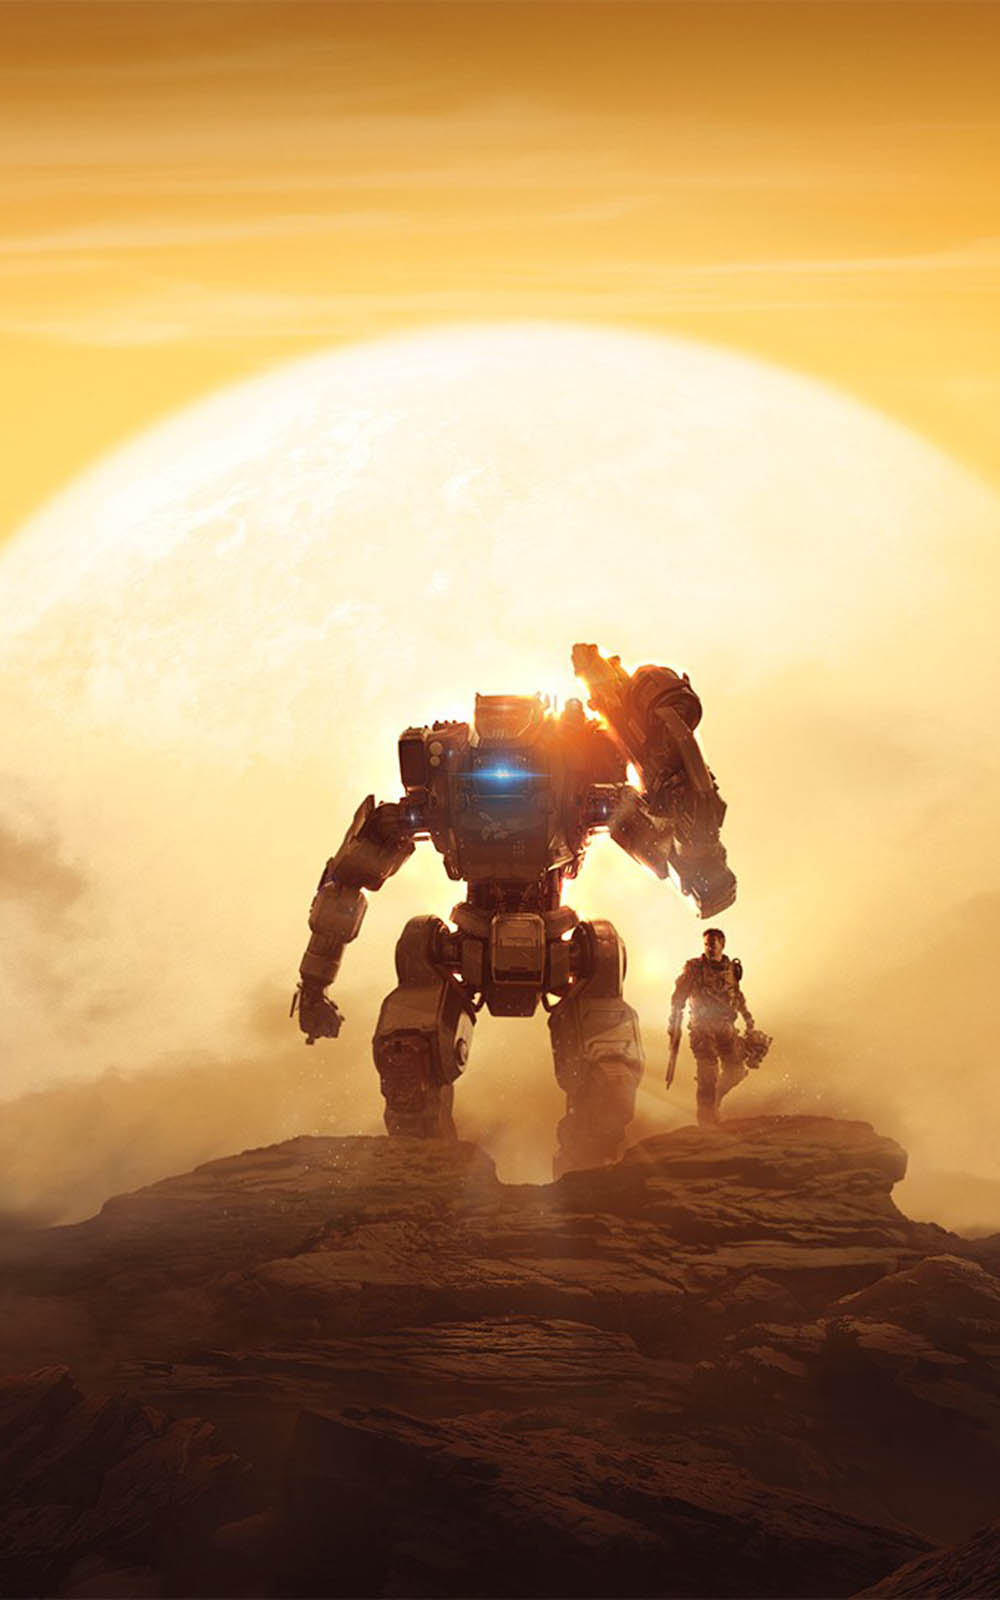 Download Titanfall 2 Game Free Pure 4k Ultra Hd Mobile Wallpaper